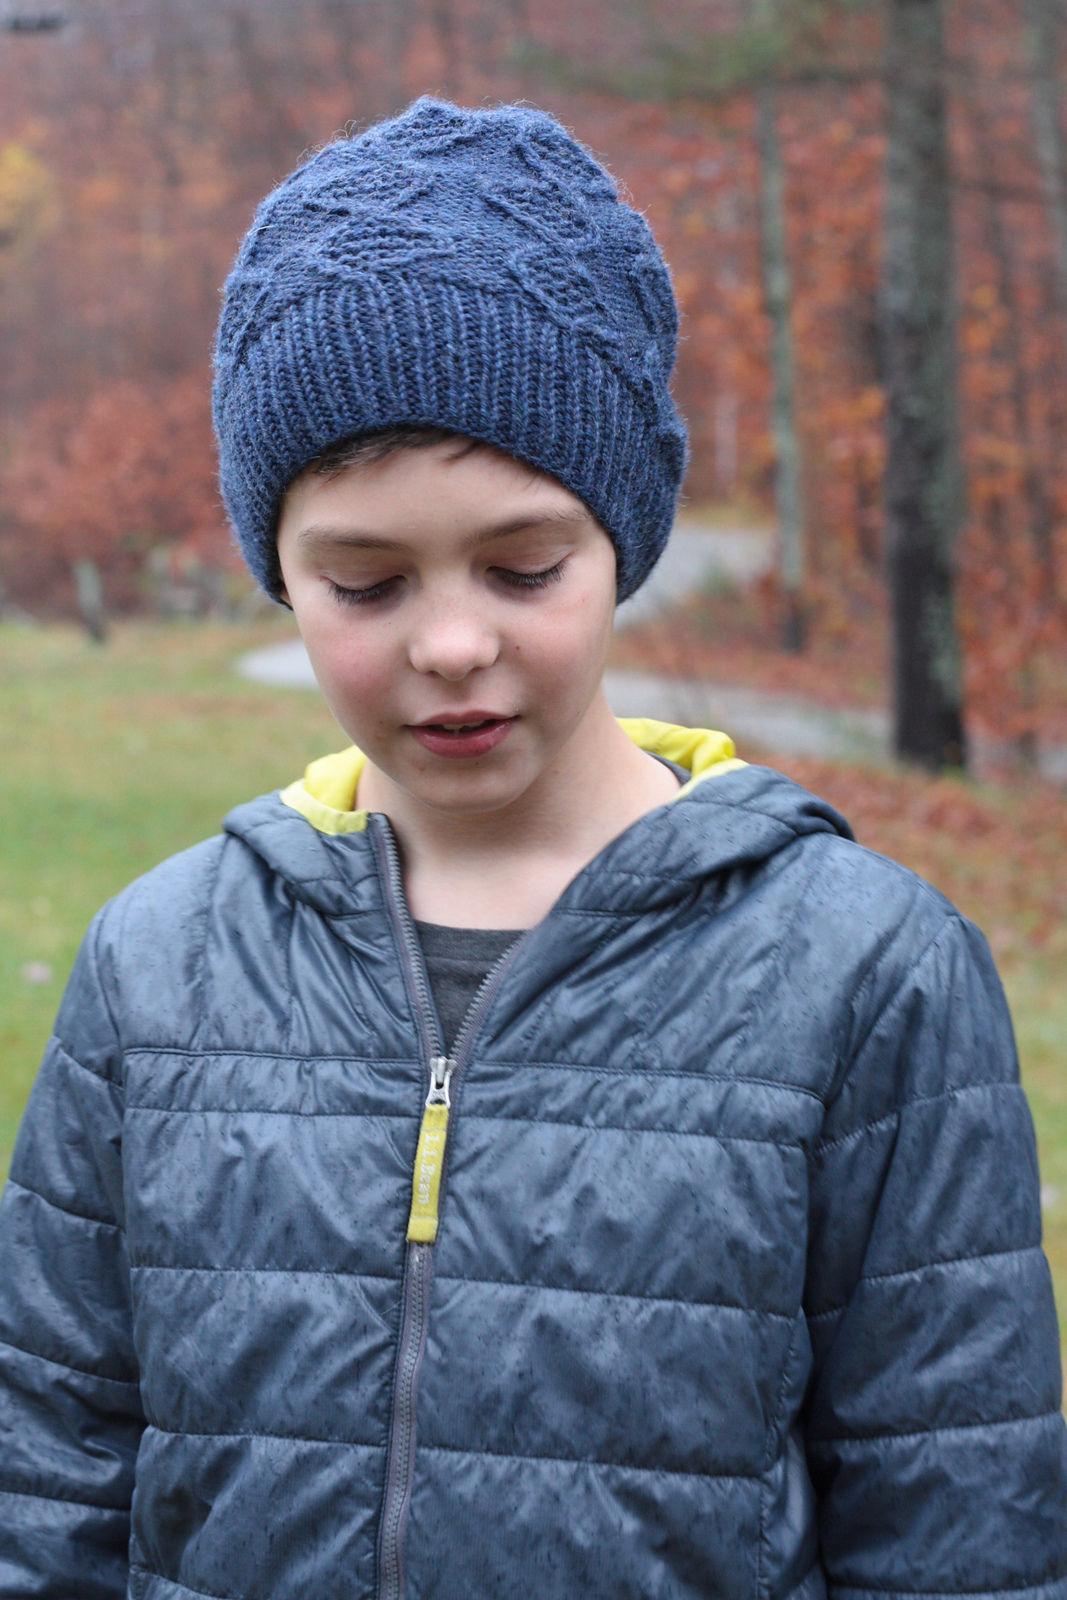 Free Knitting Patterns For Teens Childrens And Teen Hat Nye Knitting Pattern Cables